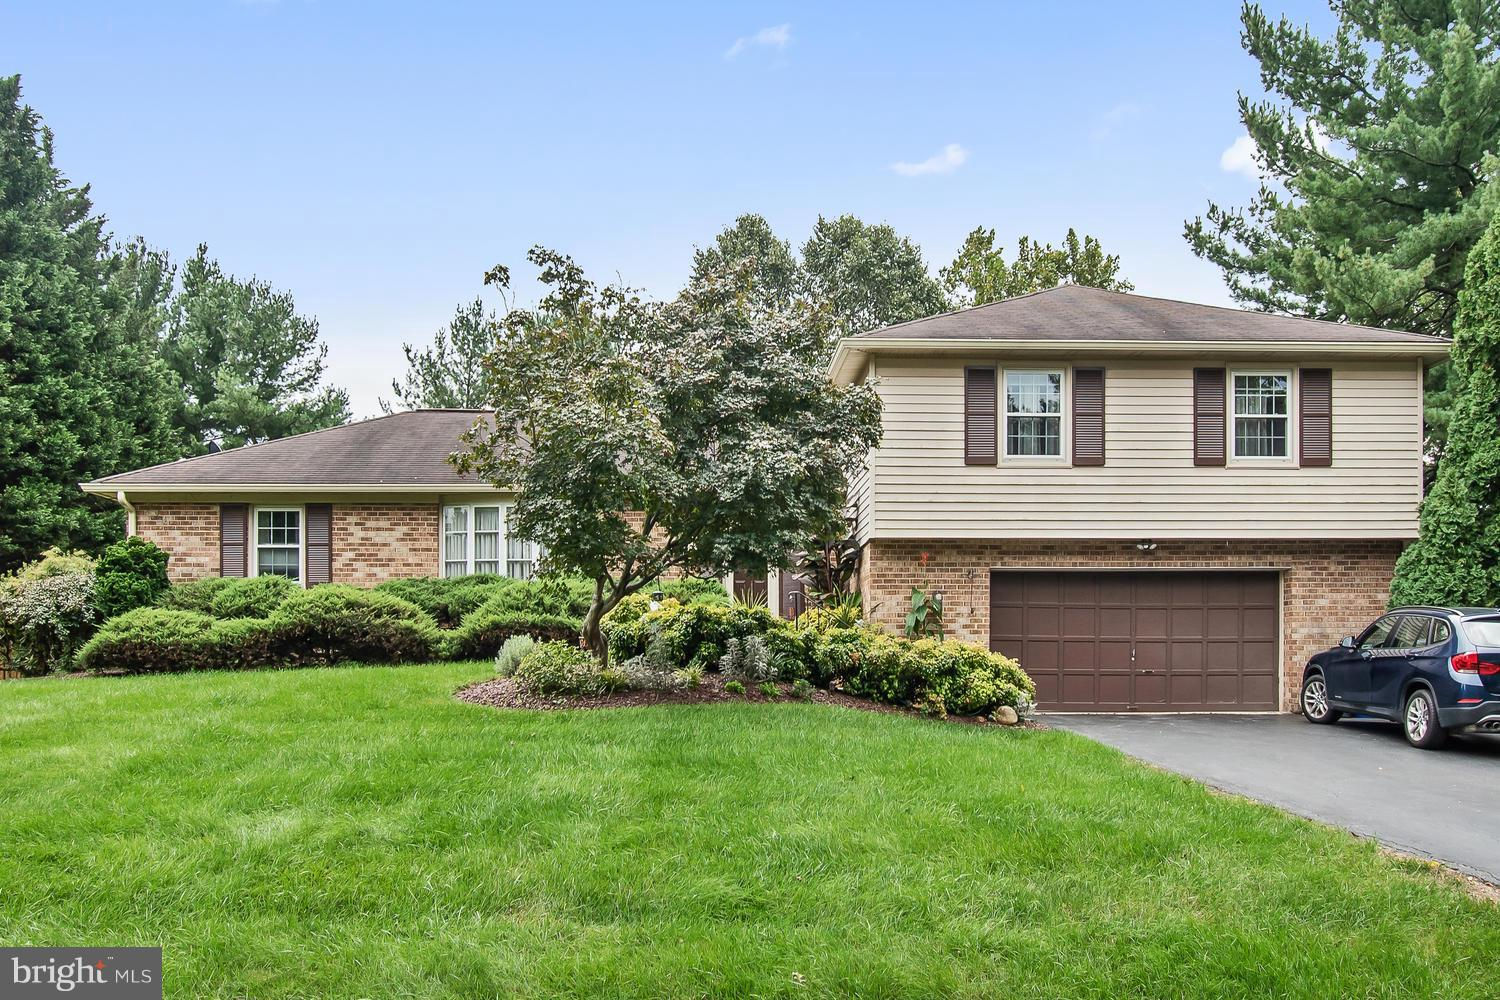 OPEN SUNDAY 10/14, 2-4 pm!! Beautifully updated home in Olney Mill! Kitchen features updated cabinets & Stainless appliances. Main level features neutral paint, crown molding, HW floors & chair railing! Partially finished basement includes FR and dancer's dream studio. Awesome backyard w/basketball court! Close to shopping, schools, and commuter routes including the ICC. A must see!!